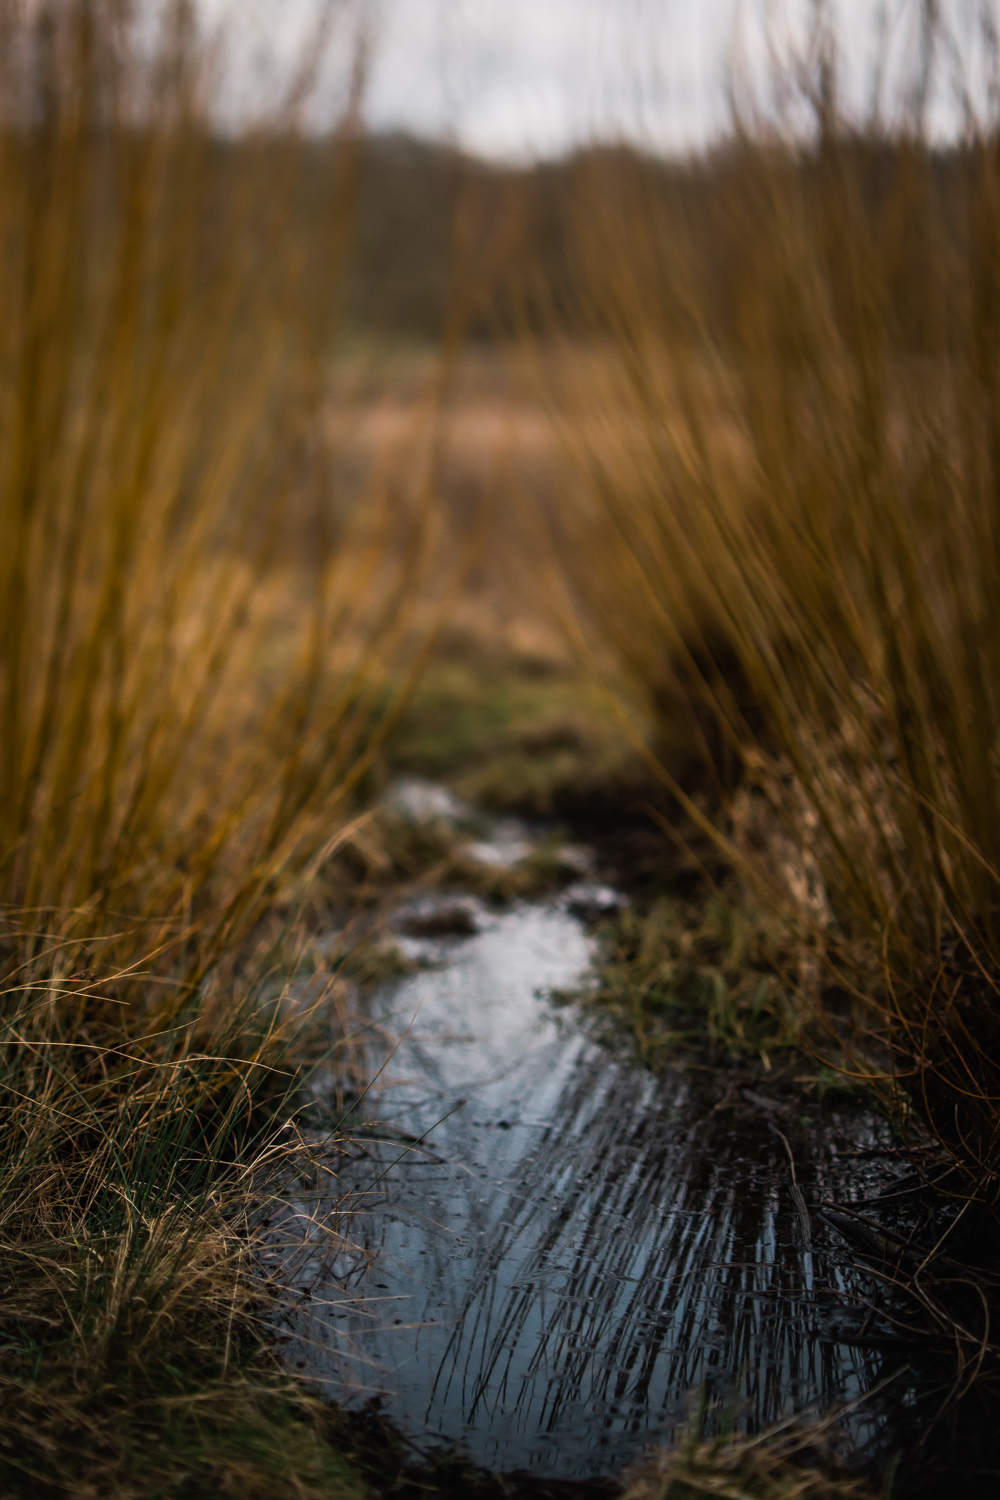 Freelensed photo of willow by a pond